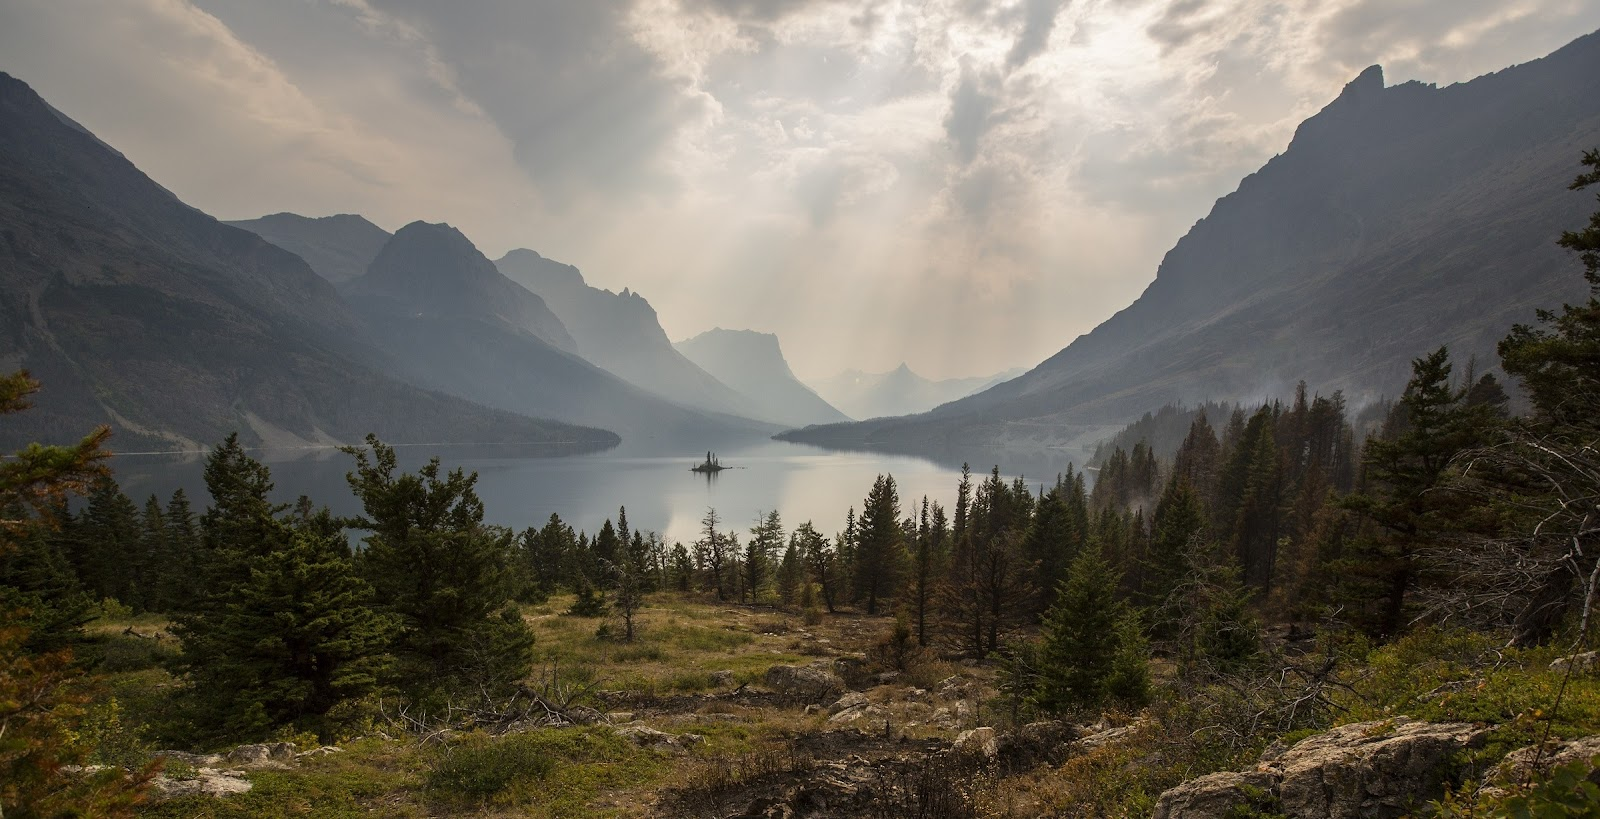 Photo of a mountain lake, with sunshine streaming through the clouds.